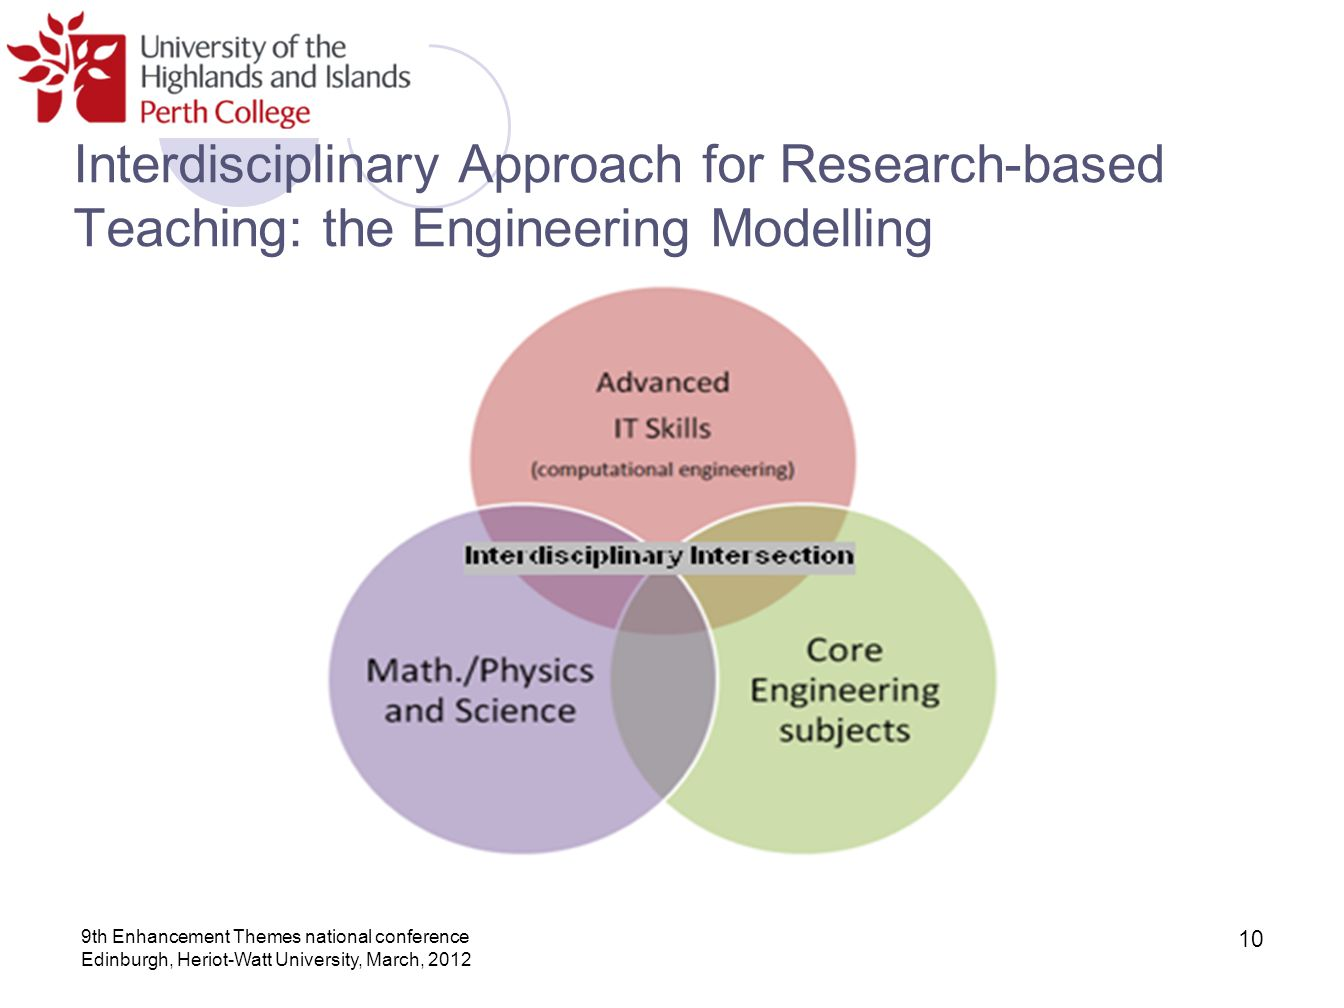 Interdisciplinary Approach for Research-based Teaching: the Engineering Modelling